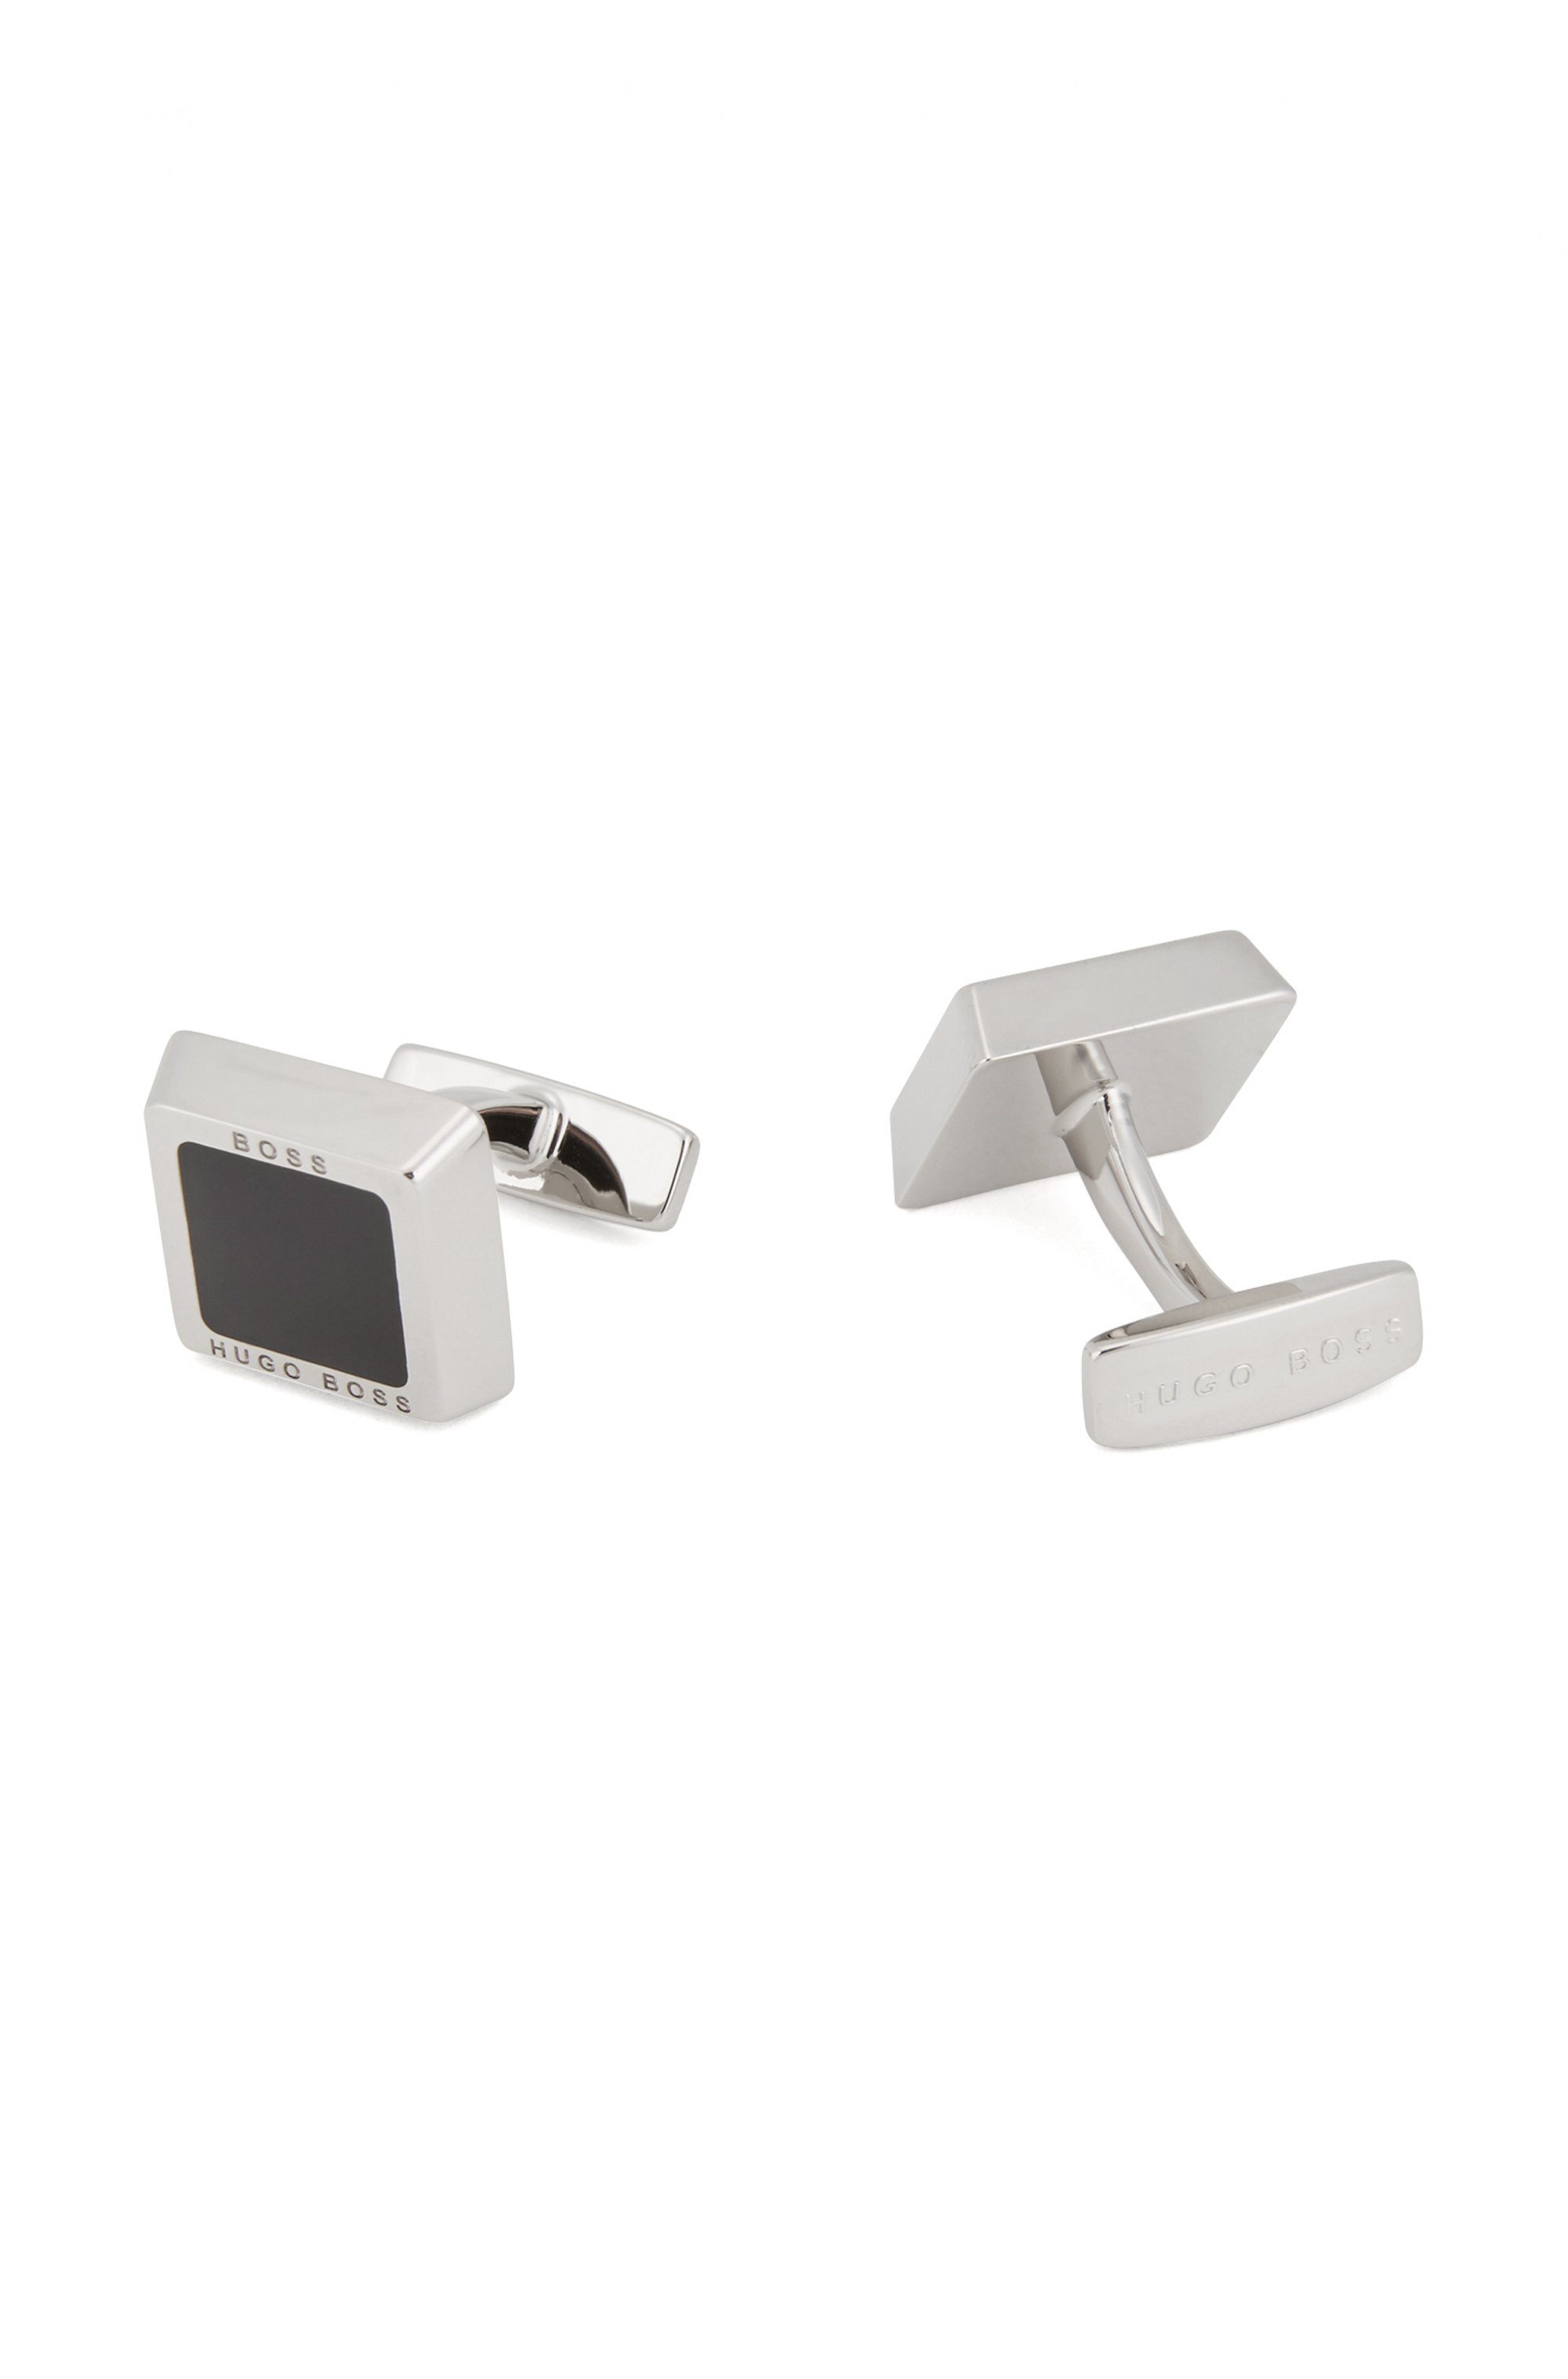 Square cufflinks with enamel insert and engraved logo, Black